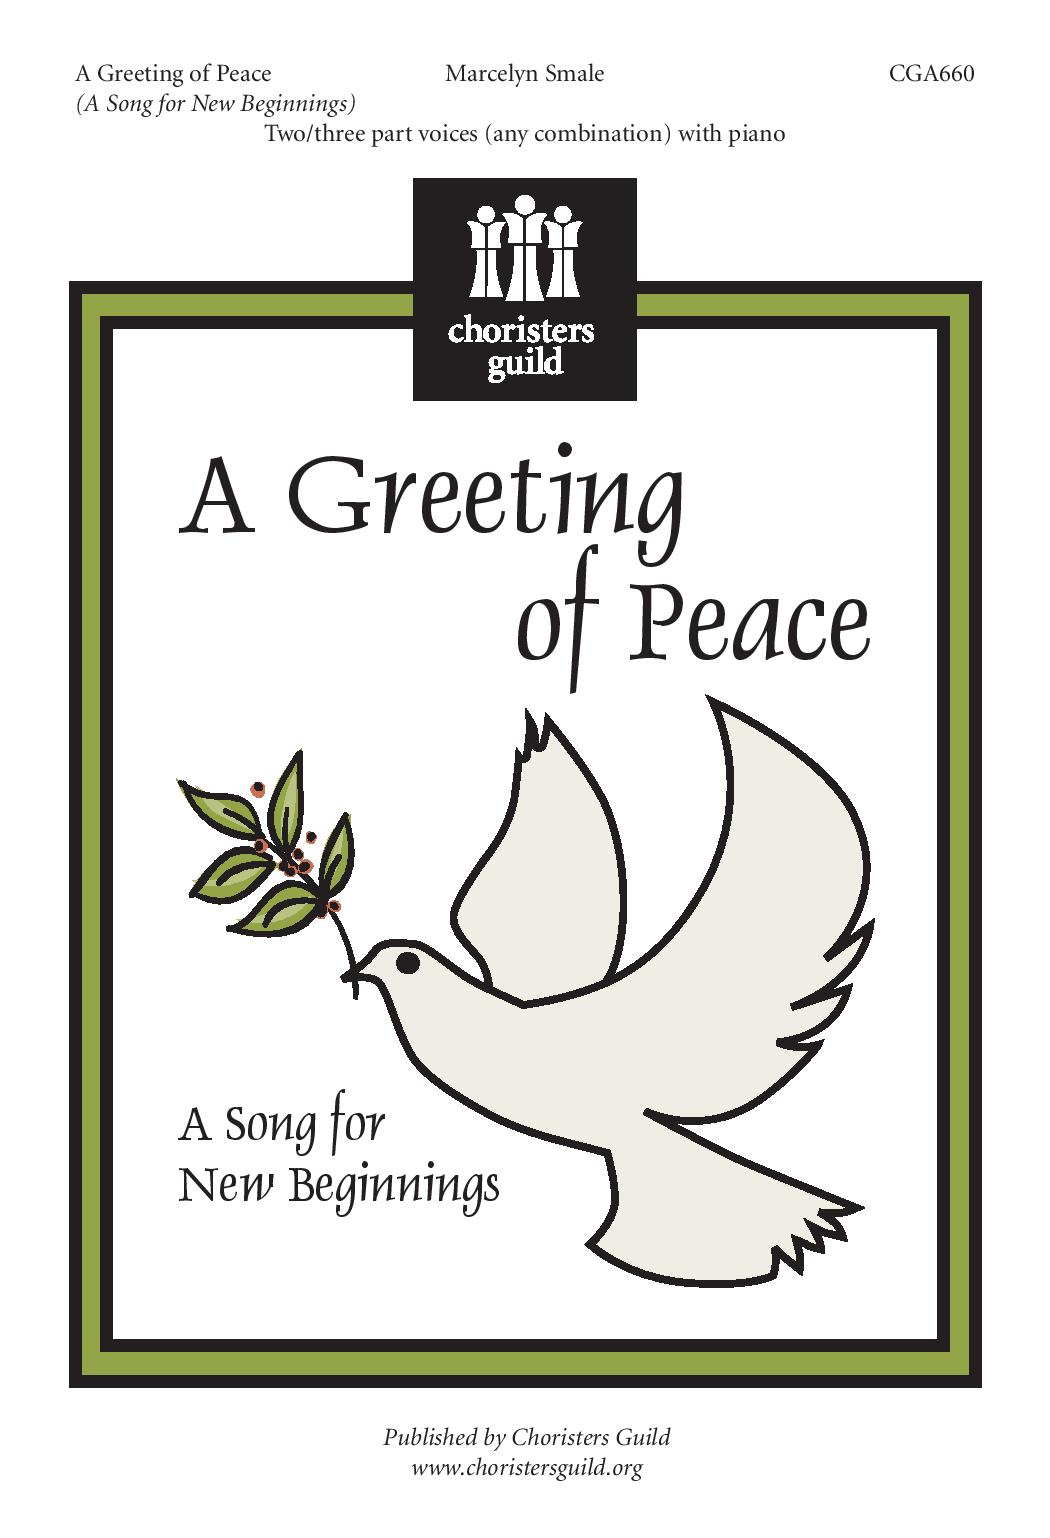 A Greeting of Peace